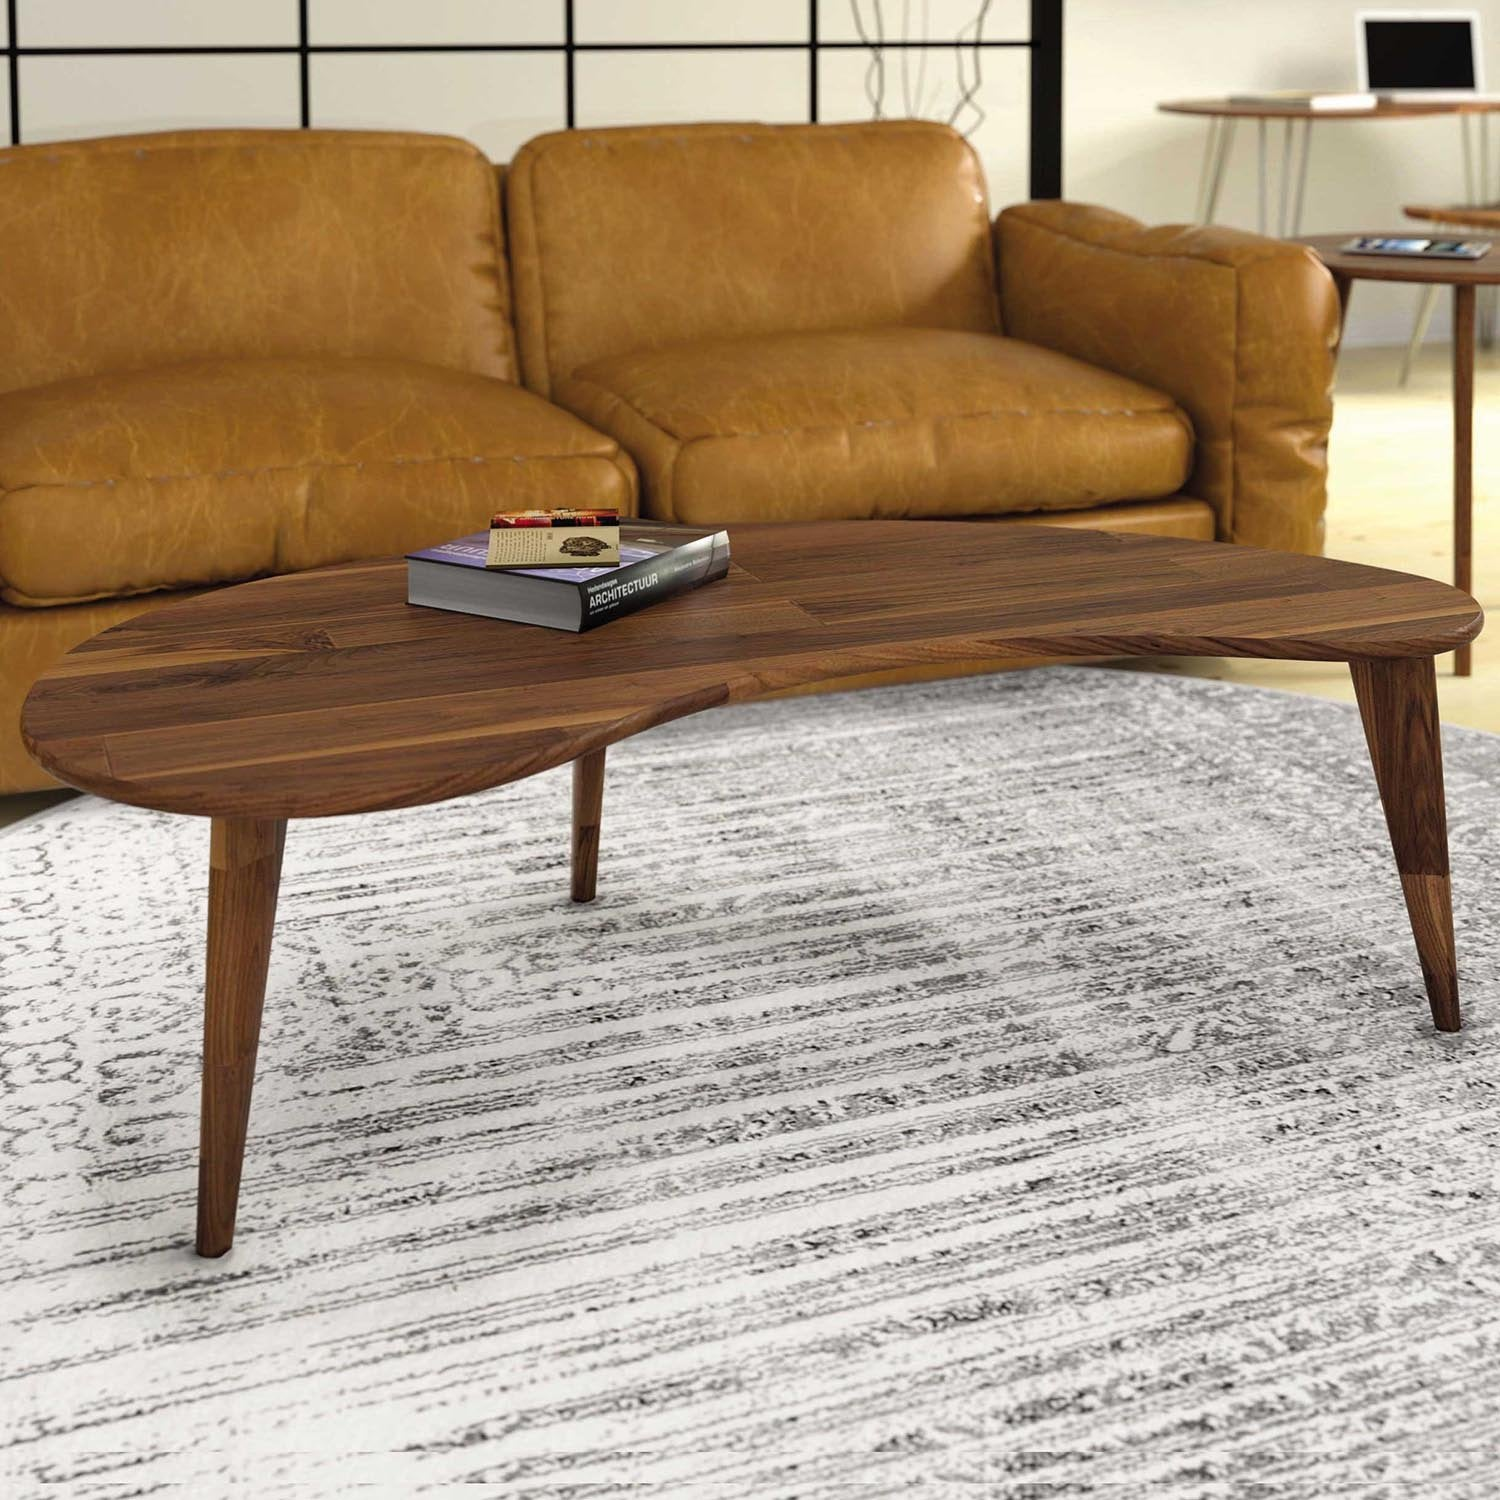 - Essentials Kidney Shaped Coffee Table, Wooden Legs Copeland